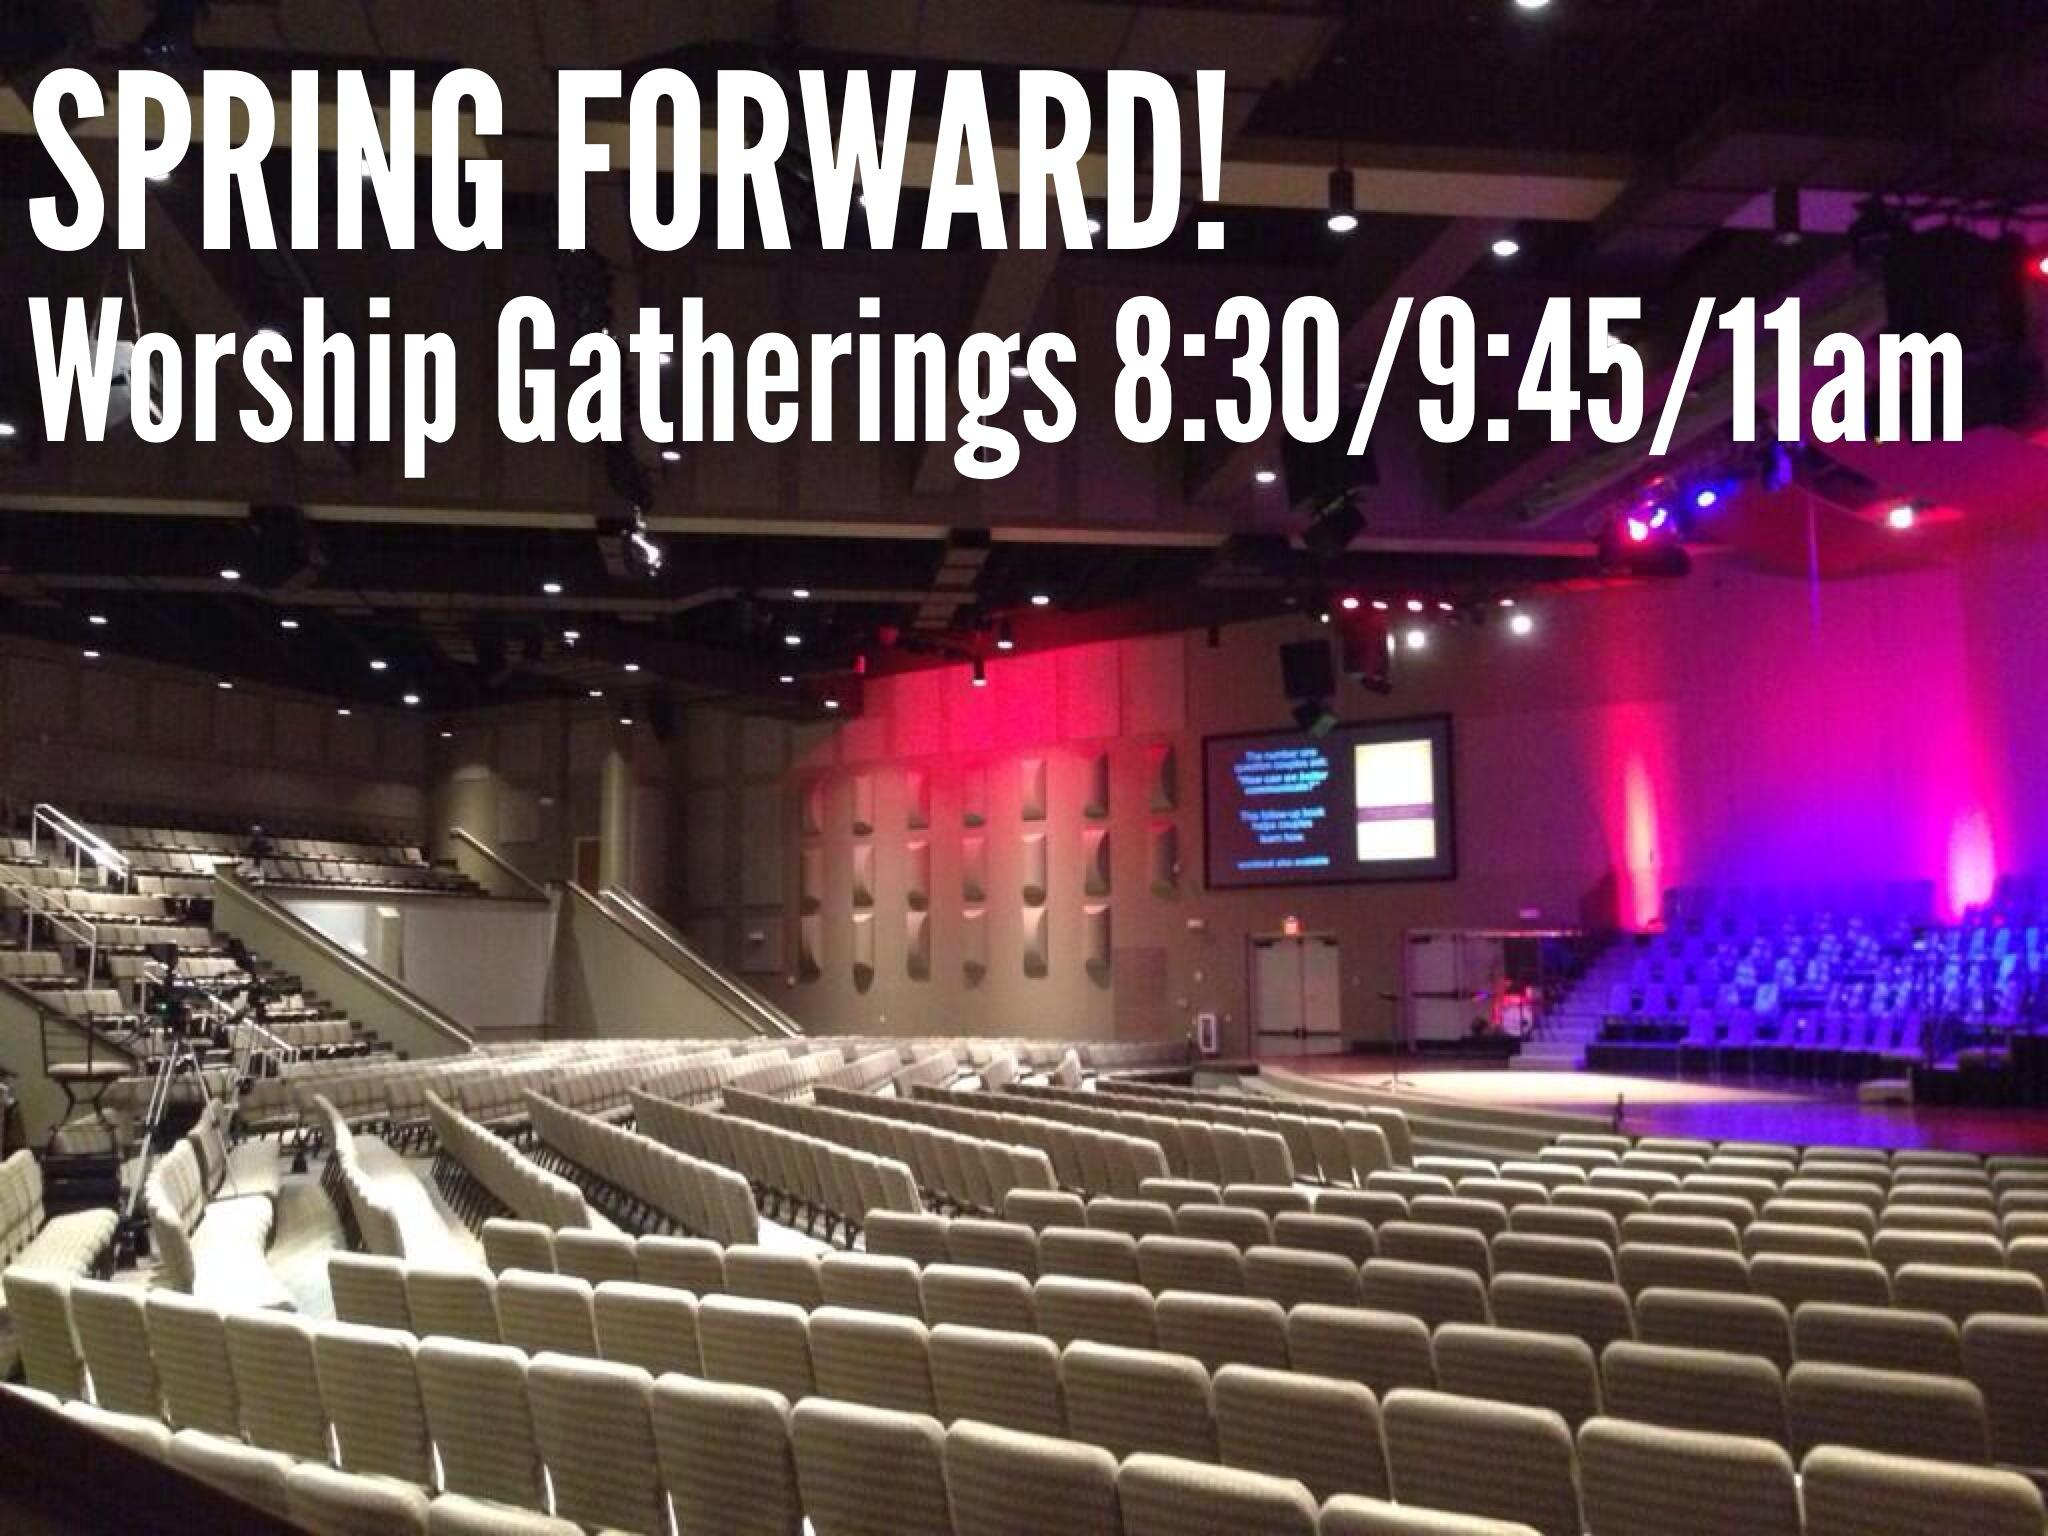 Don't forget to #SpringForward! See you for worship & Small Groups tomorrow morning! http://t.co/T0c8MCFO8P